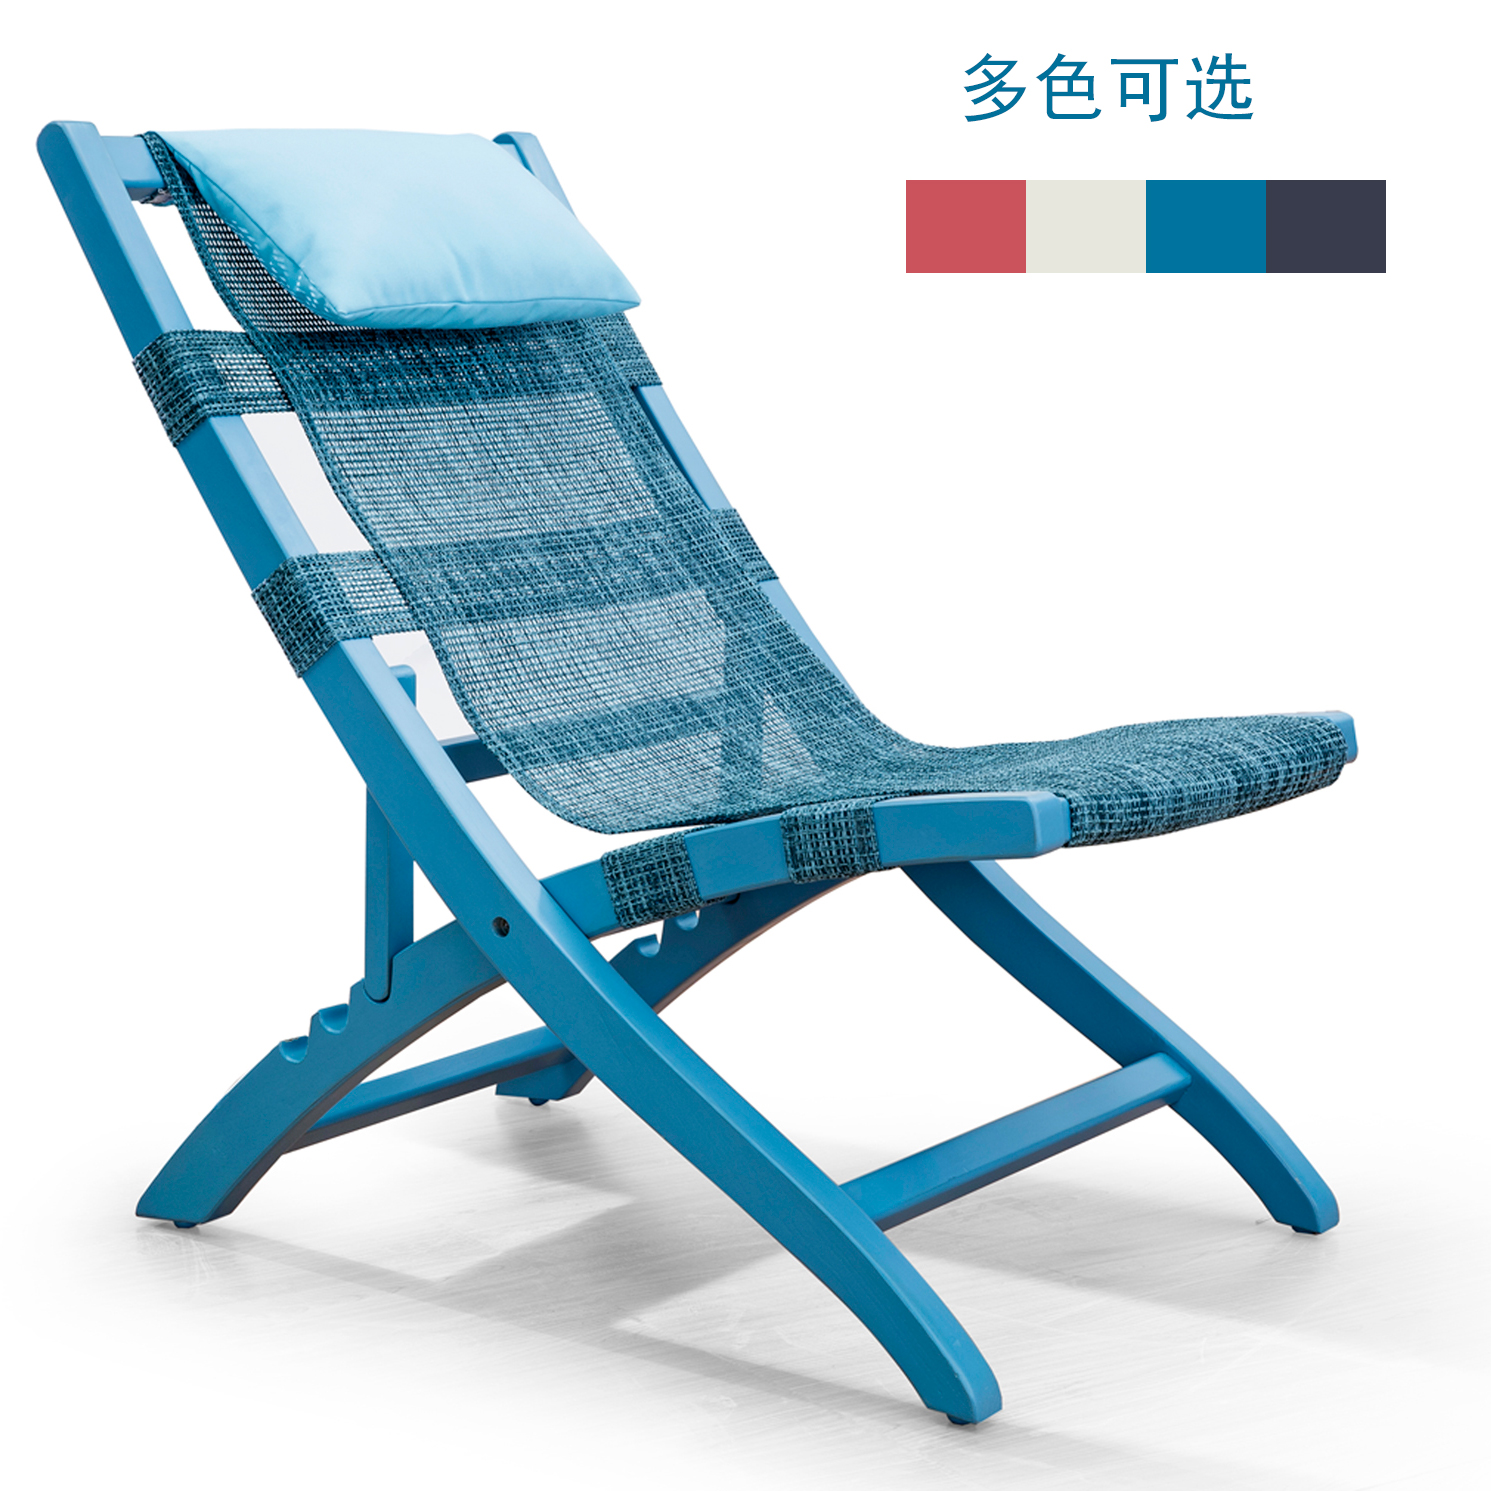 durable dp bed camping sun fold pool outdoor sports com outdoors amazon cot folding lounge chair patio beach chaise recliner foldable